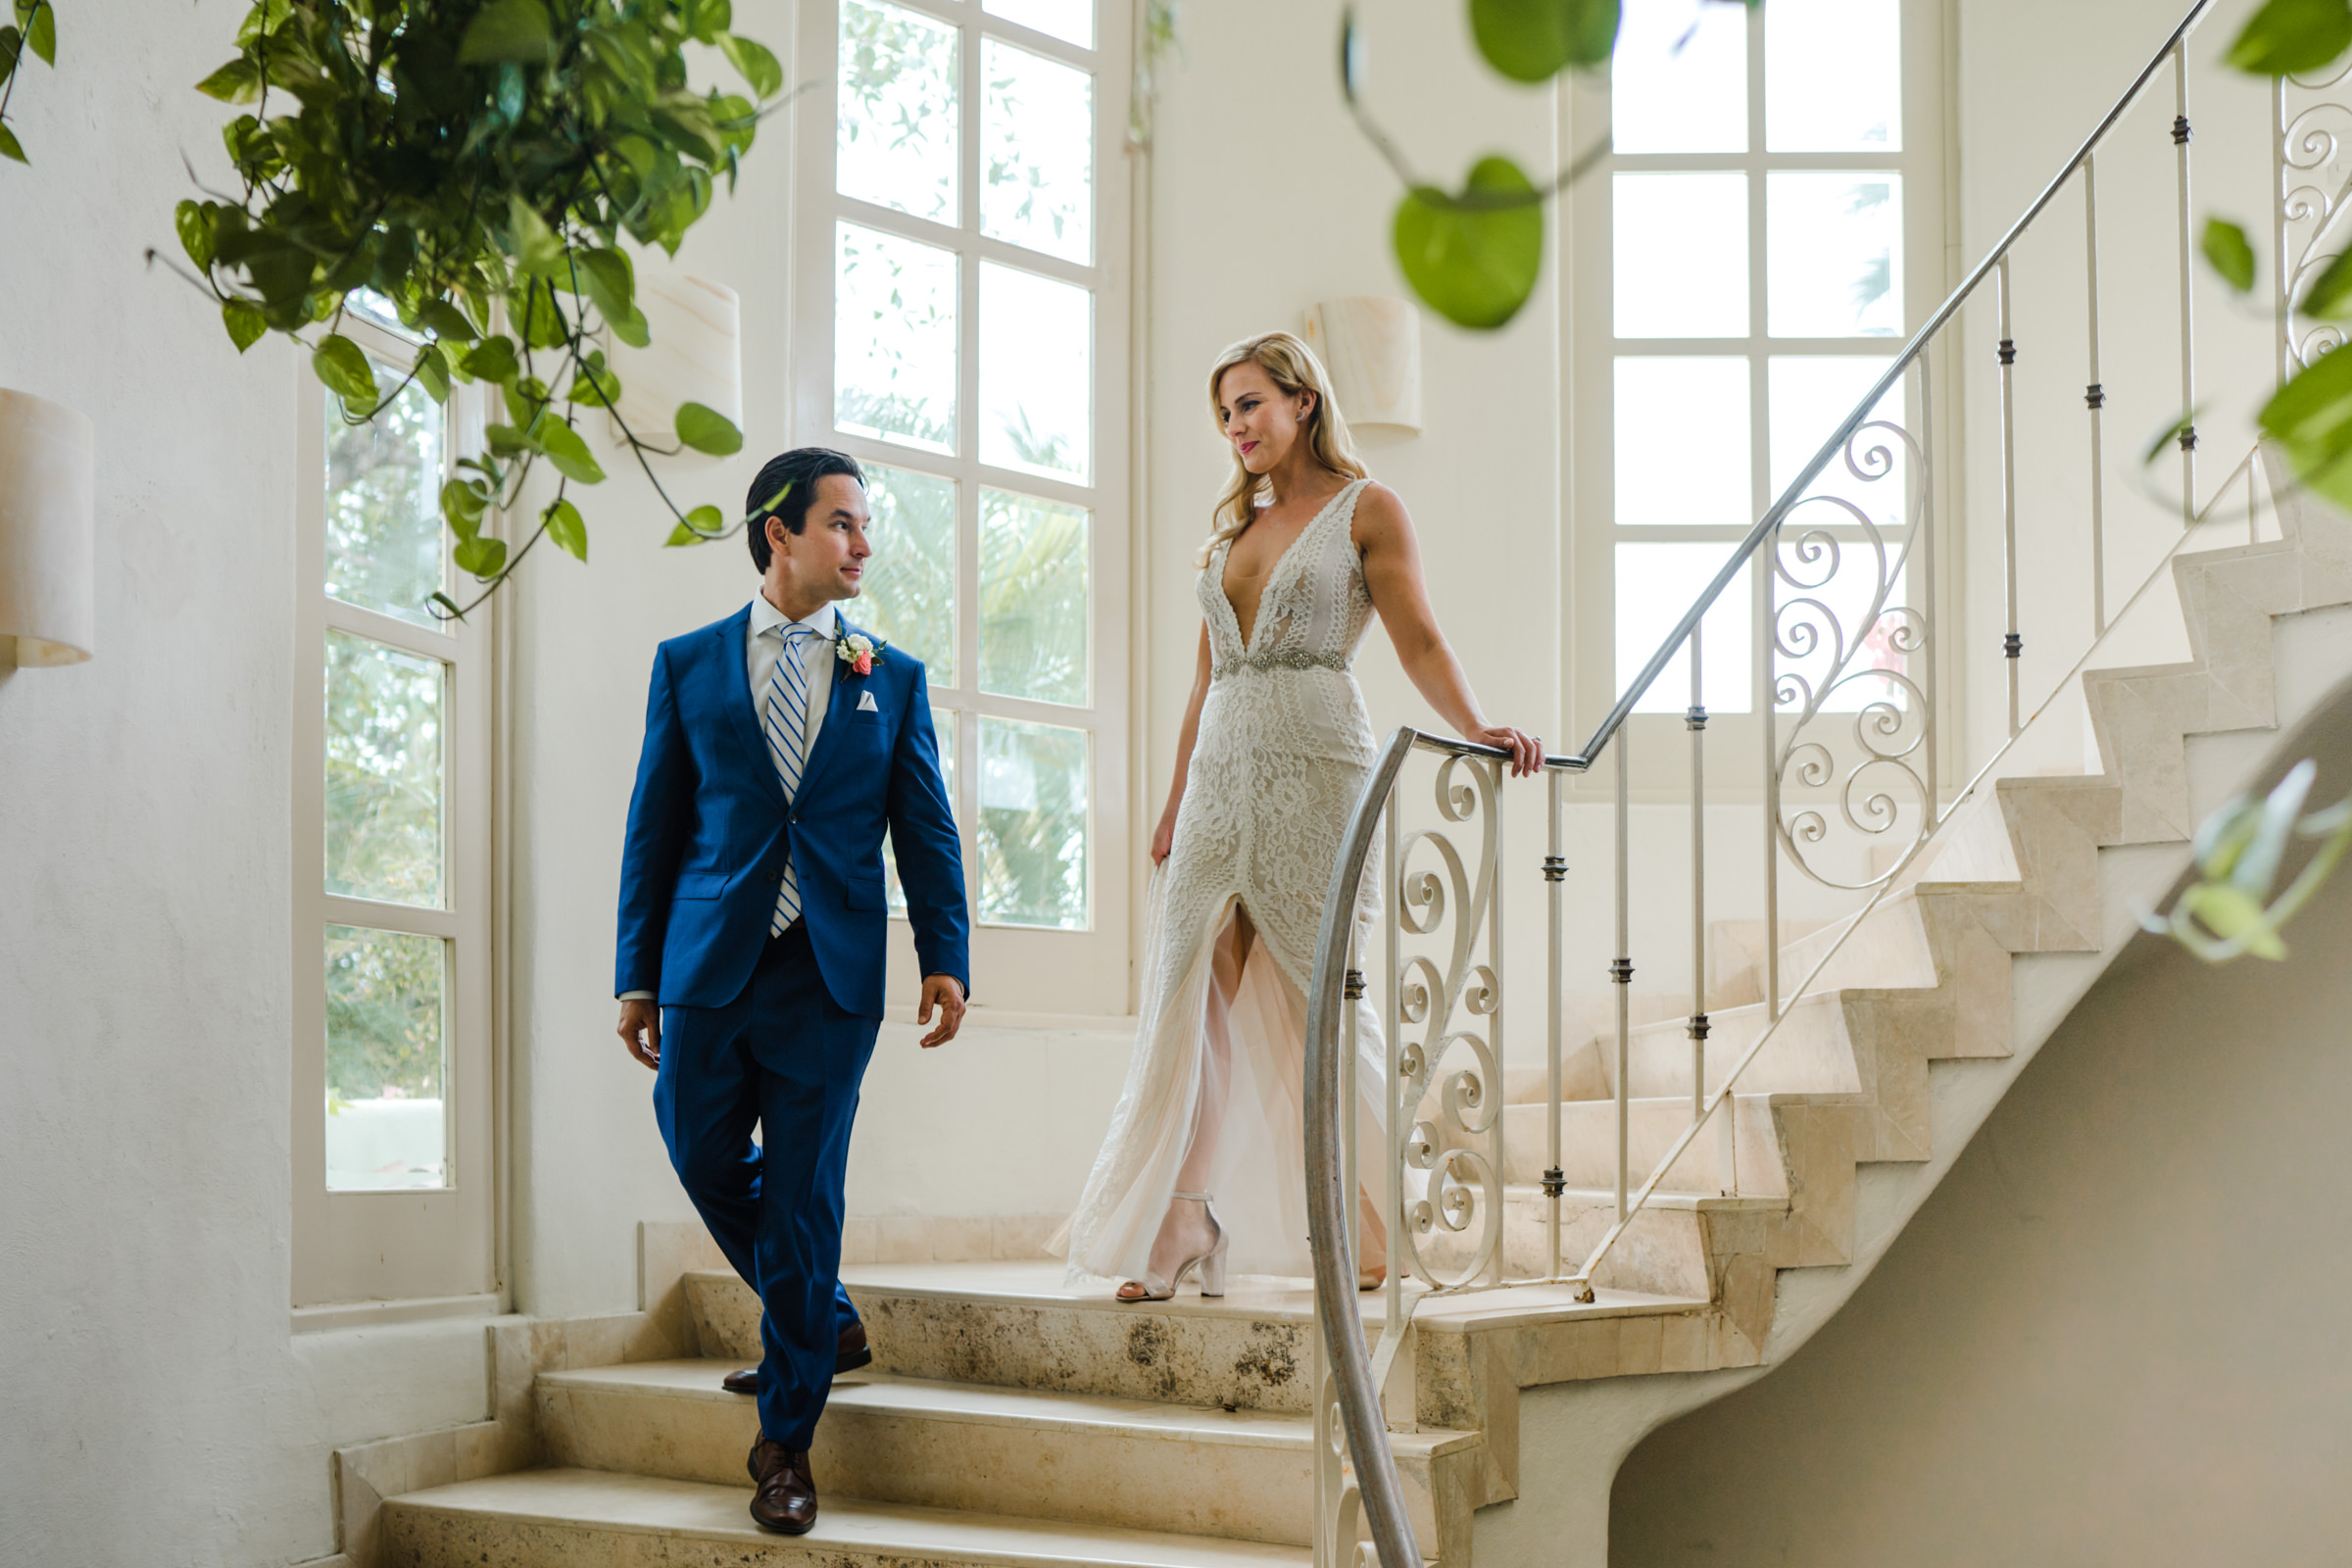 Bride and groom descending stairs - photo by Sasha Reiko Photography